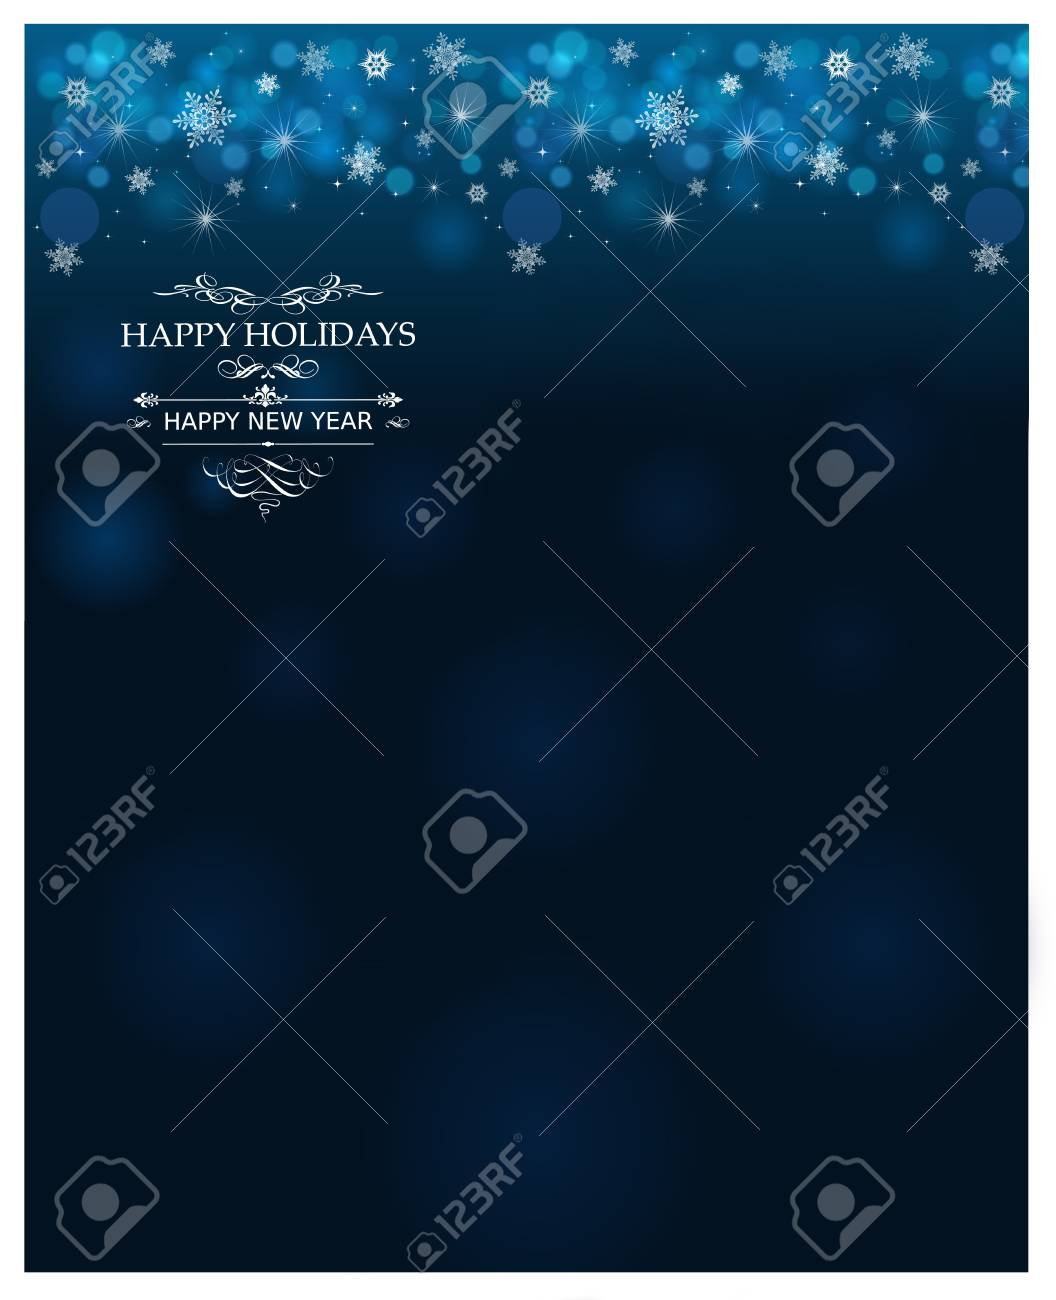 Winter Holidays Postcard Wallpaper Background Template Stock Photo